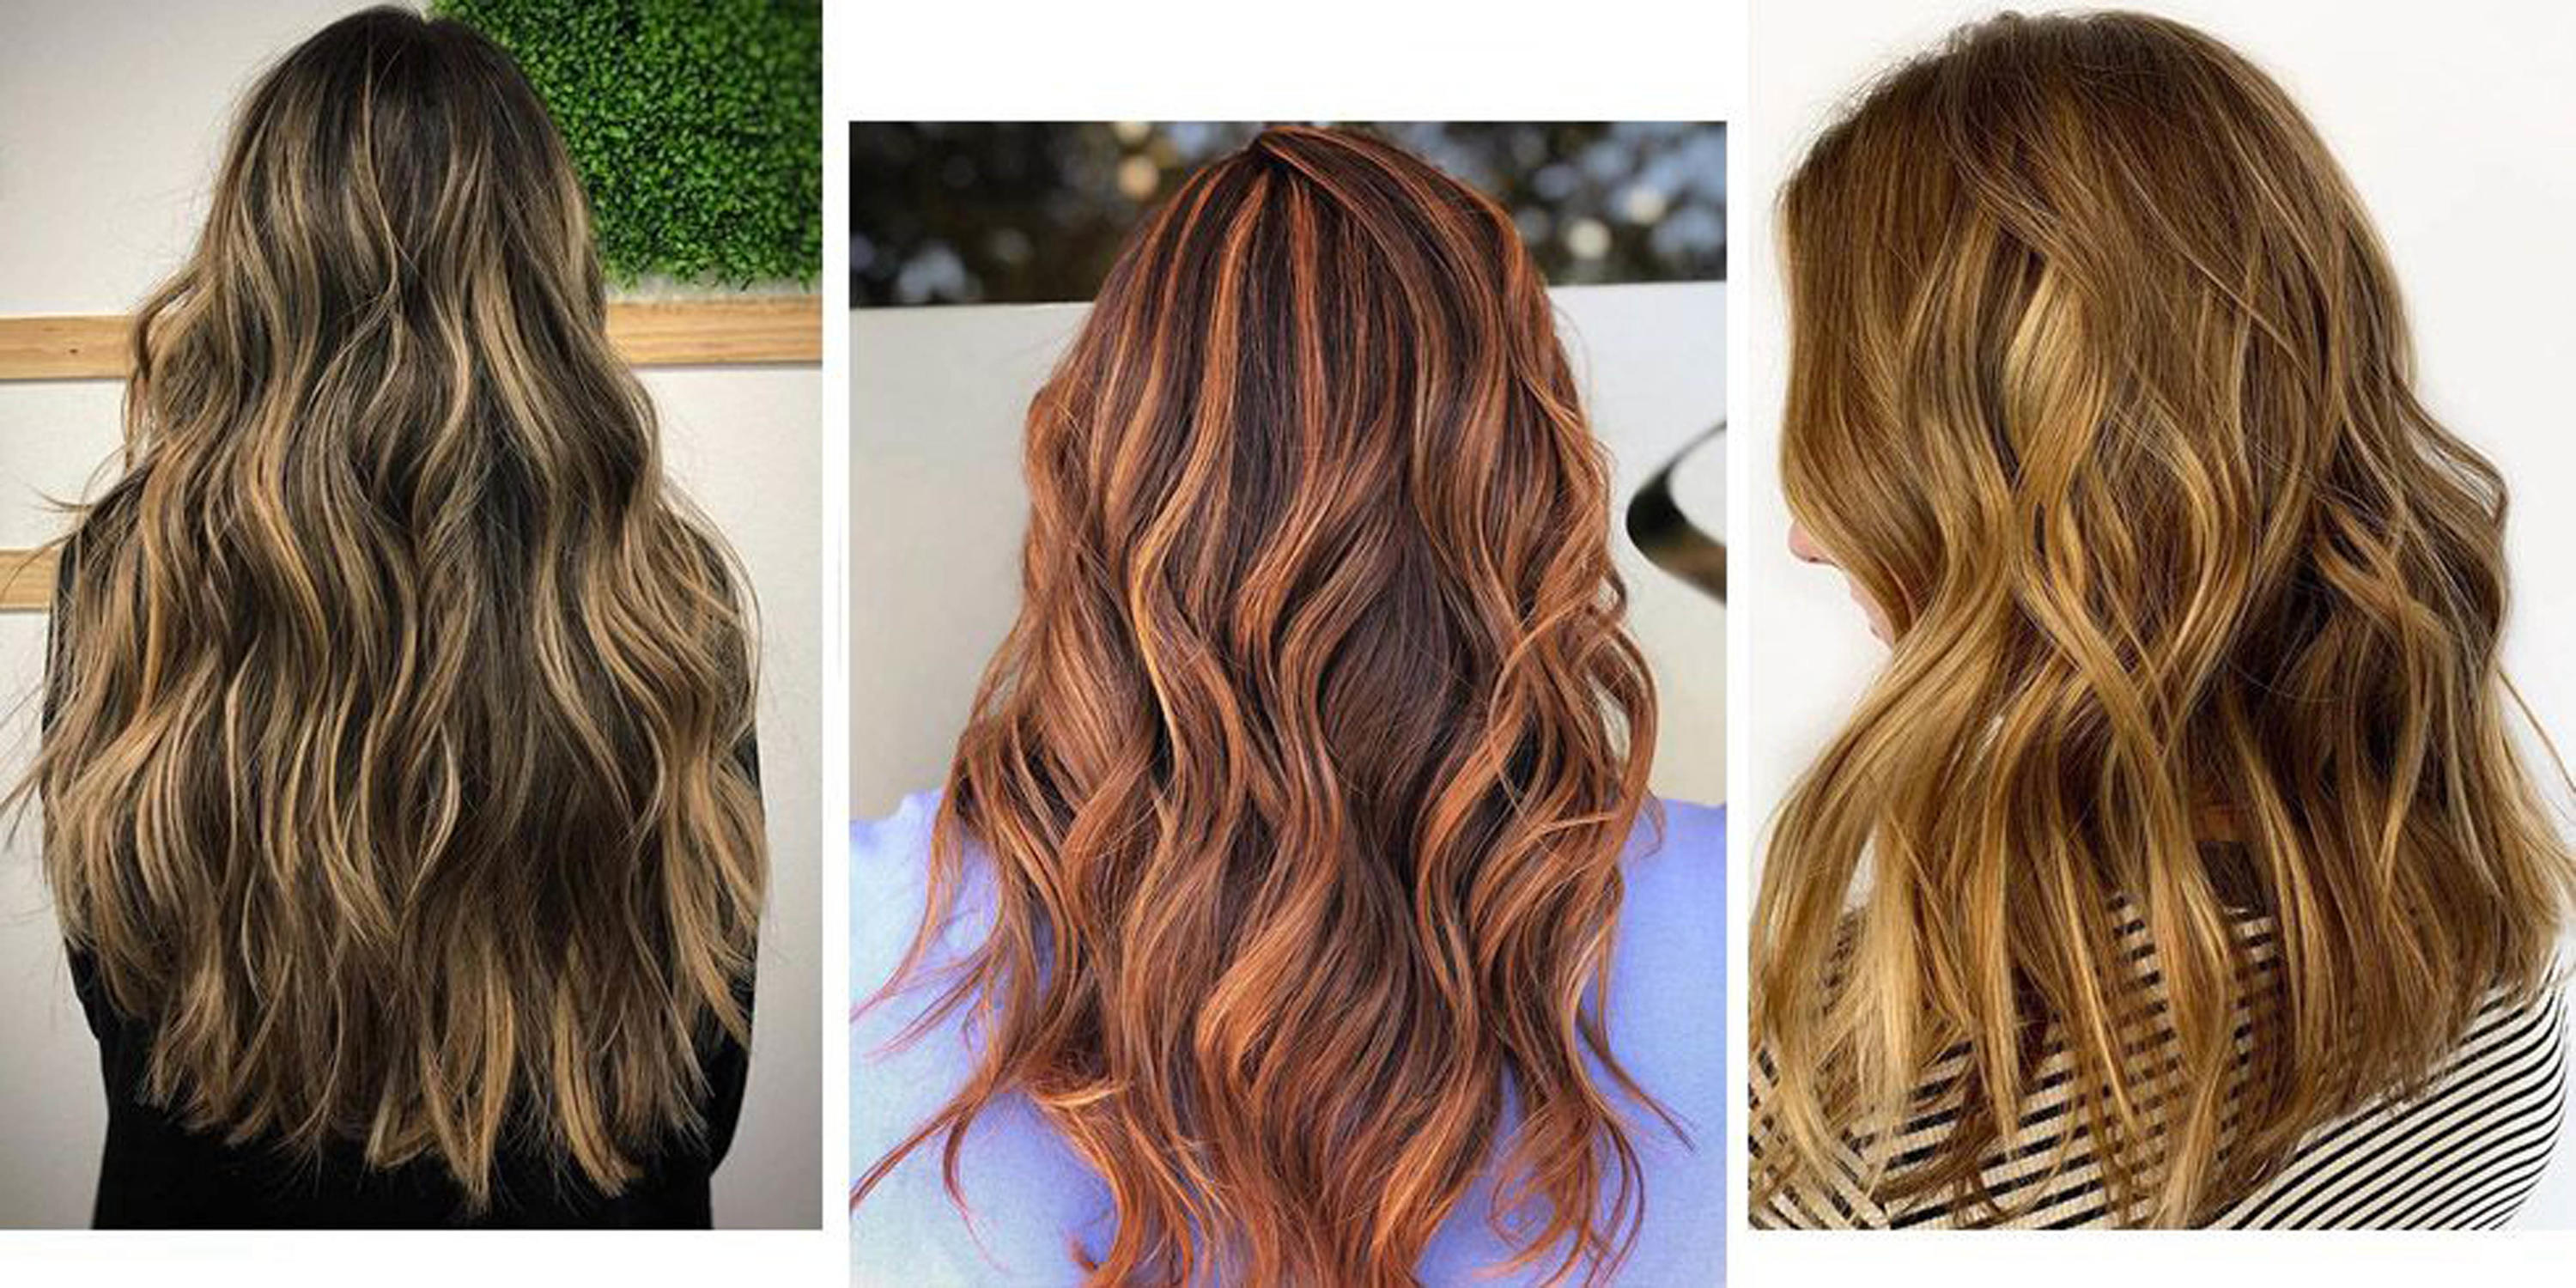 Chunky Highlights All The Inspo You Need To Nail The 90s Hair Colour Trend Beauty Cosmopolitan Middle East